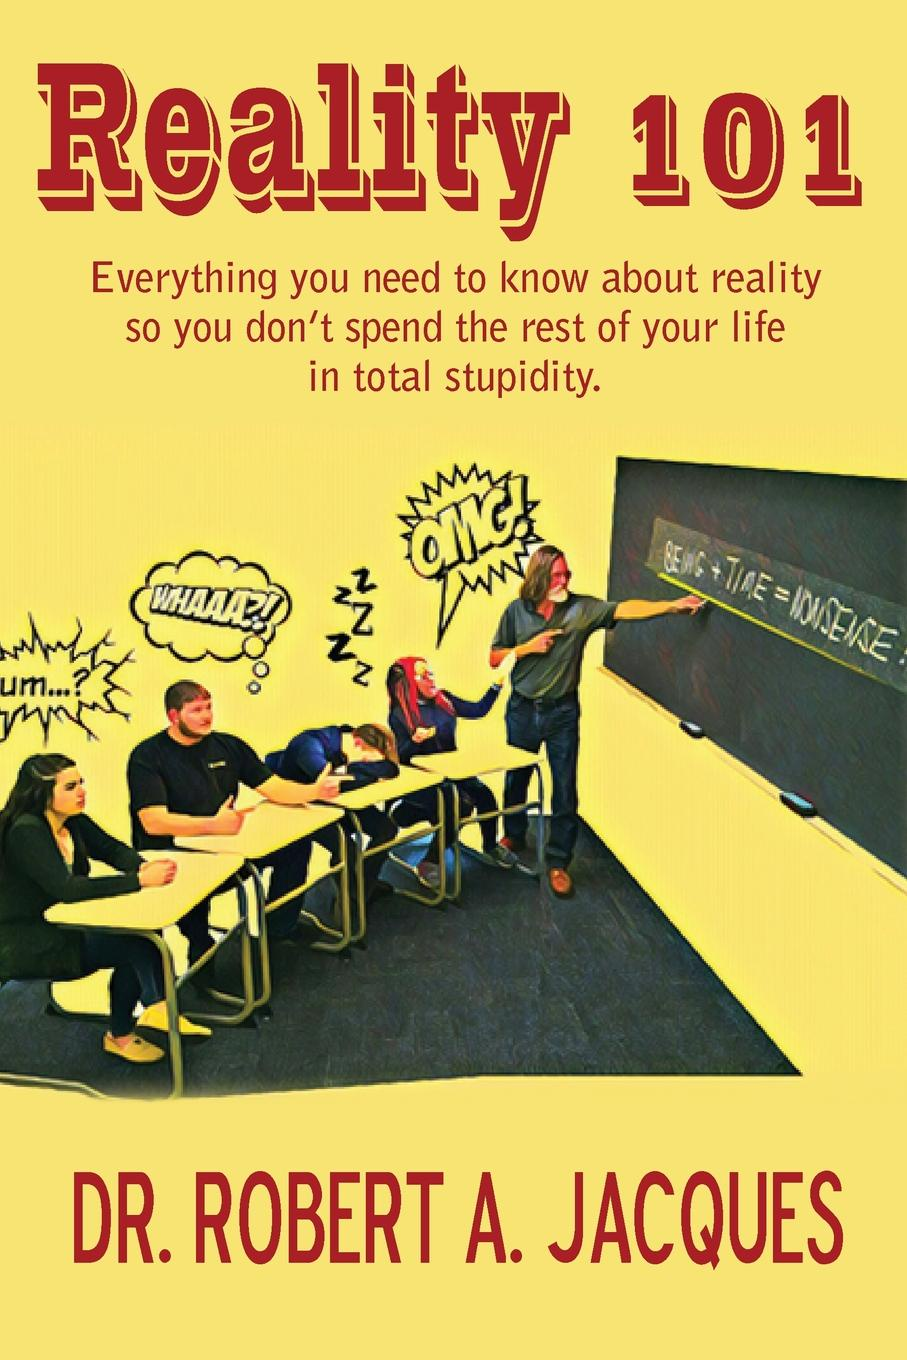 Dr. Robert Jacques REALITY 101. Everything you need to know about reality so you don.t spend the rest of your life in total stupidity